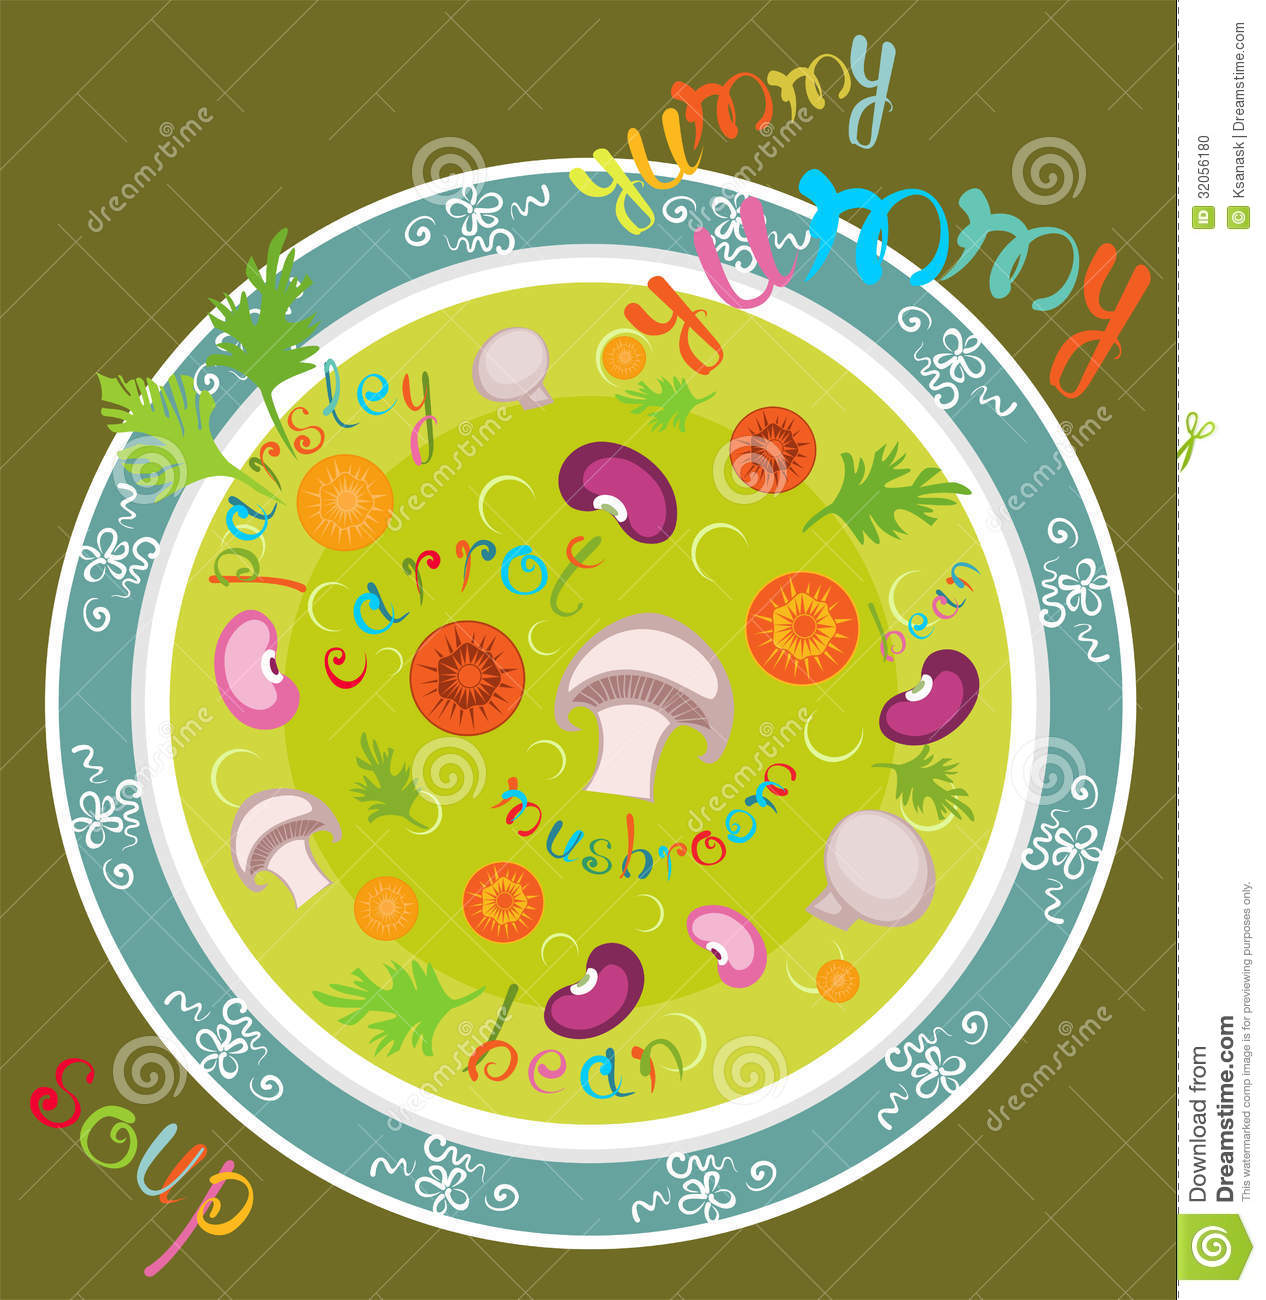 Yummy Yummy Soup Stock Vector. Illustration Of Healthy